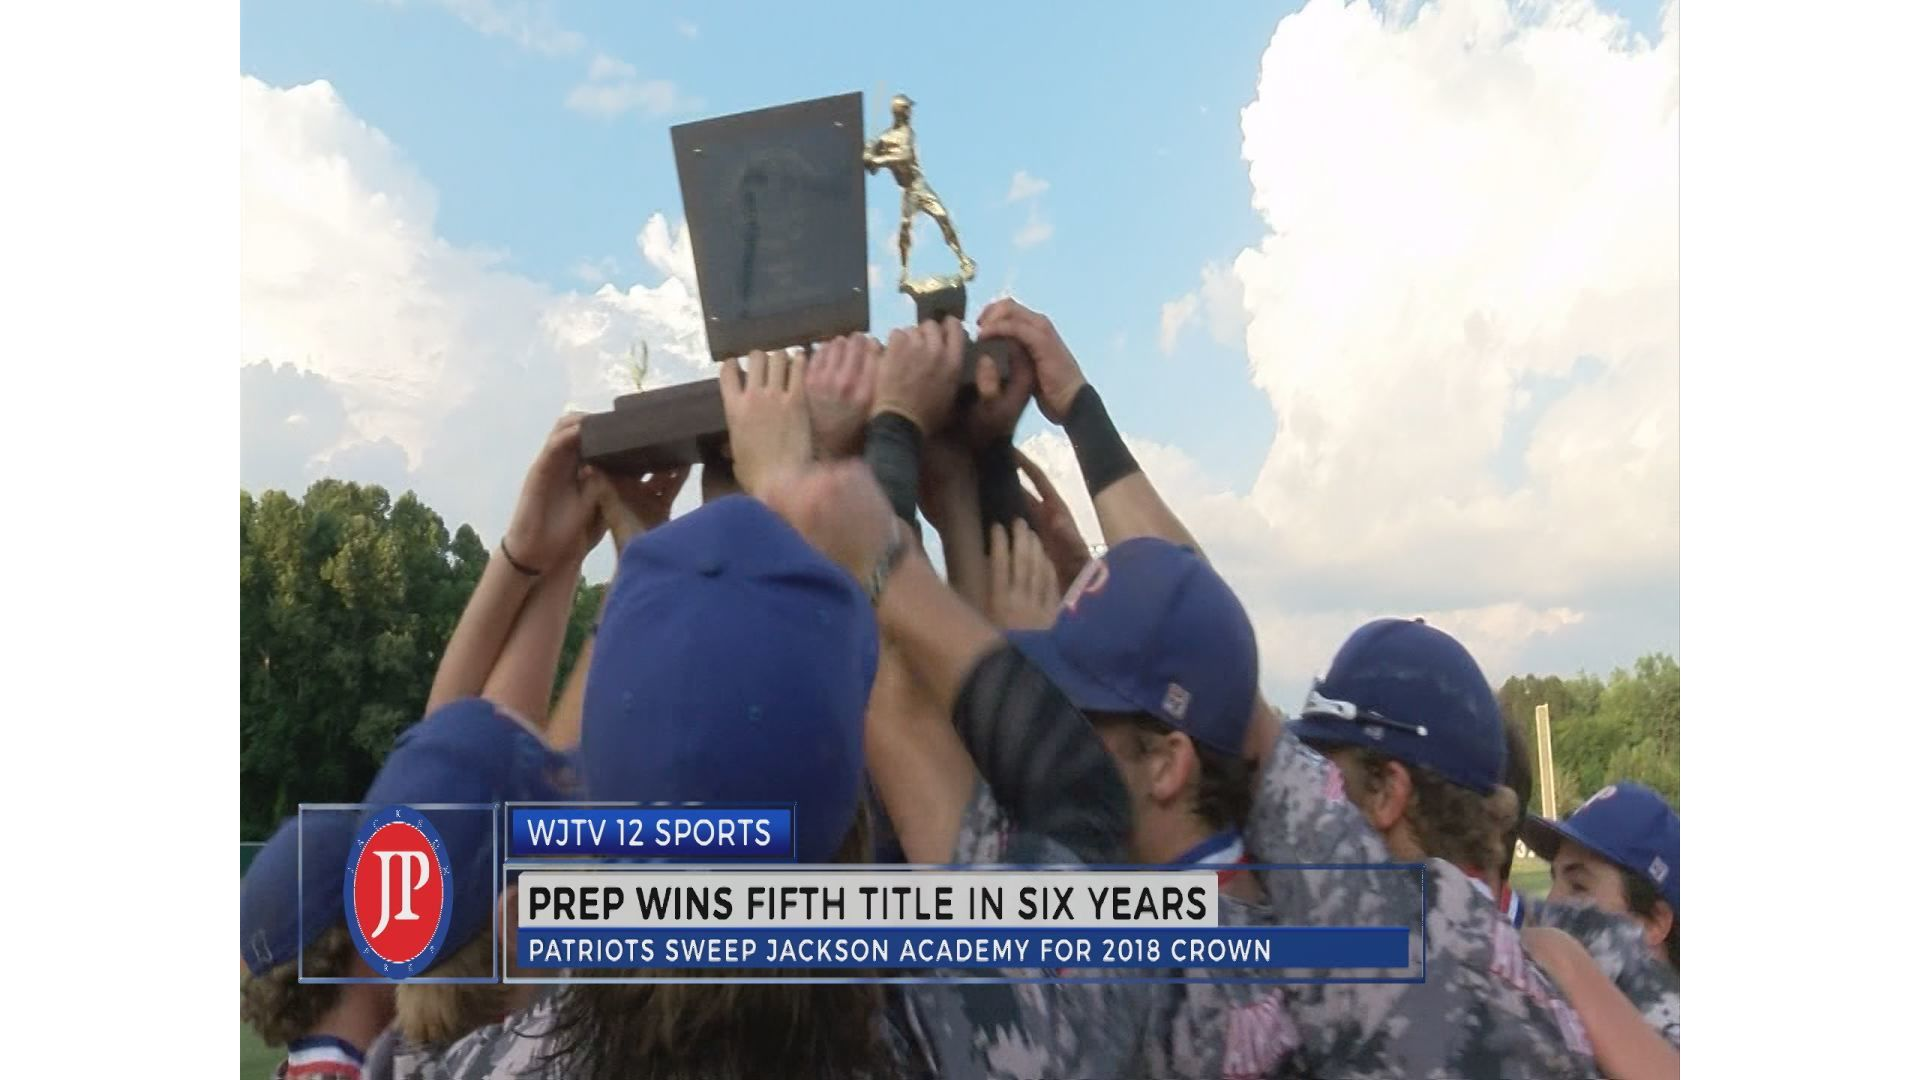 Jackson_Prep_wins_5th_state_title_in_6_s_0_20180517035557